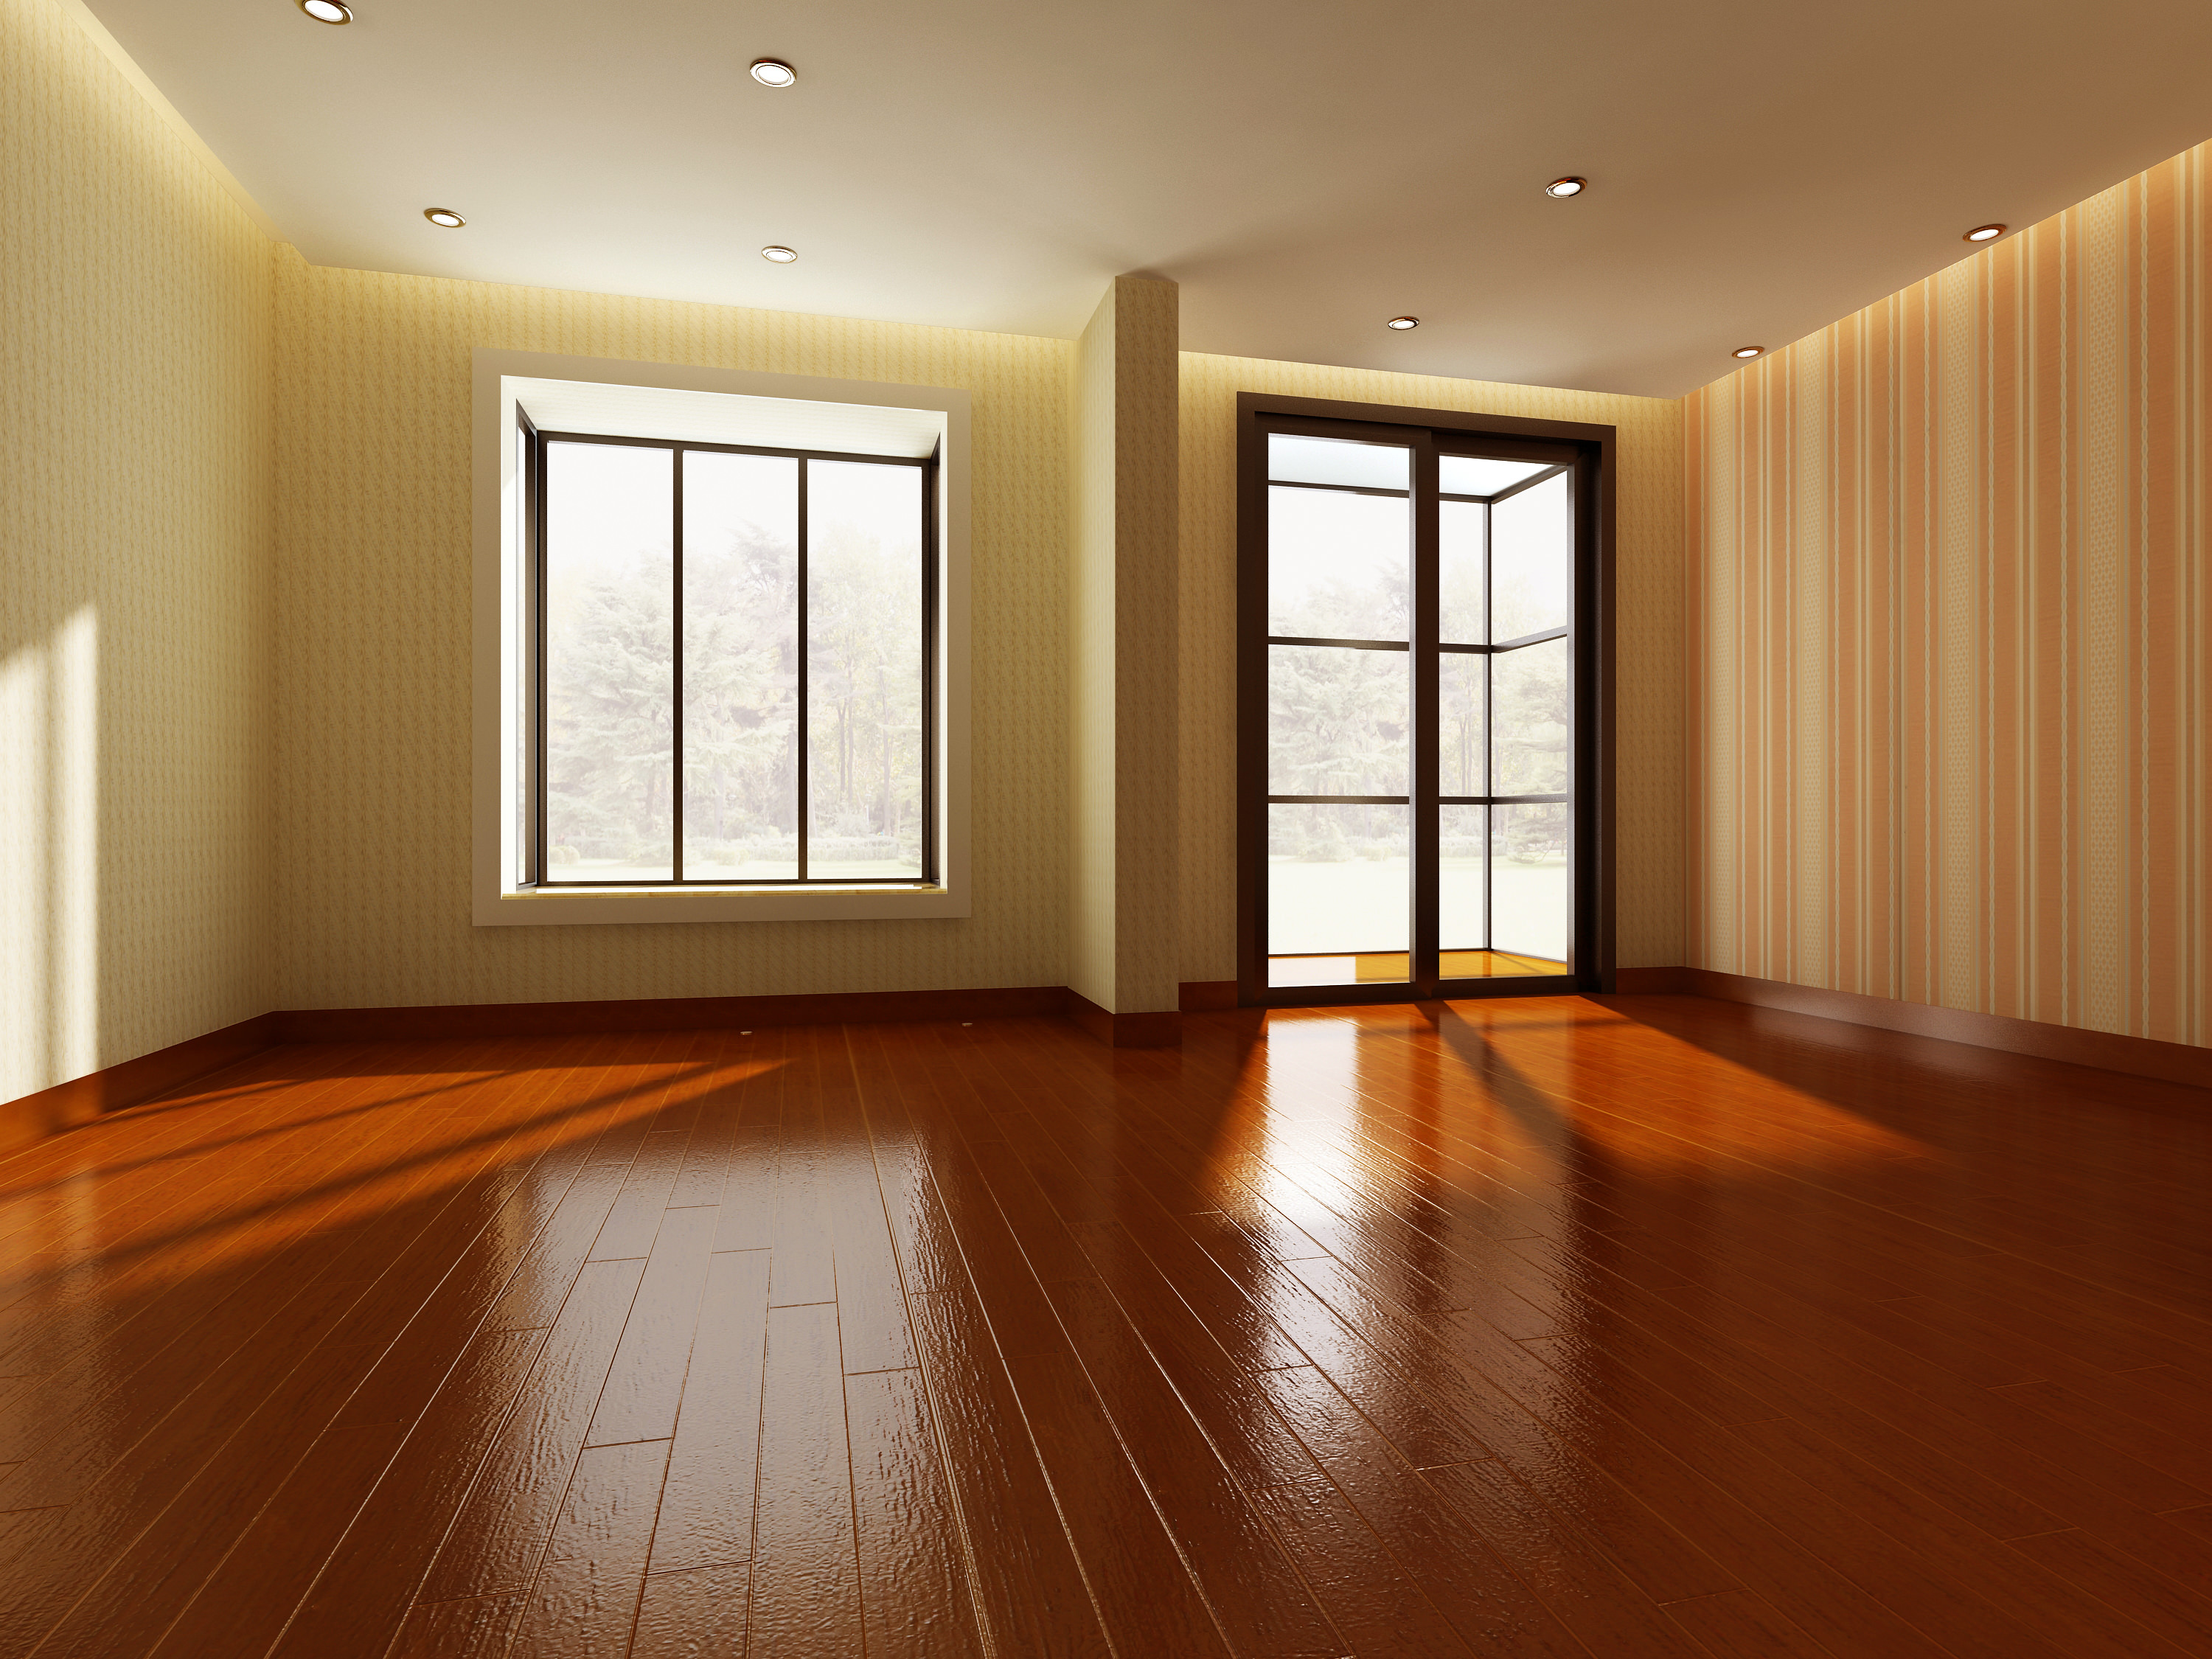 Empty Room 3D Model .max - CGTrader.com